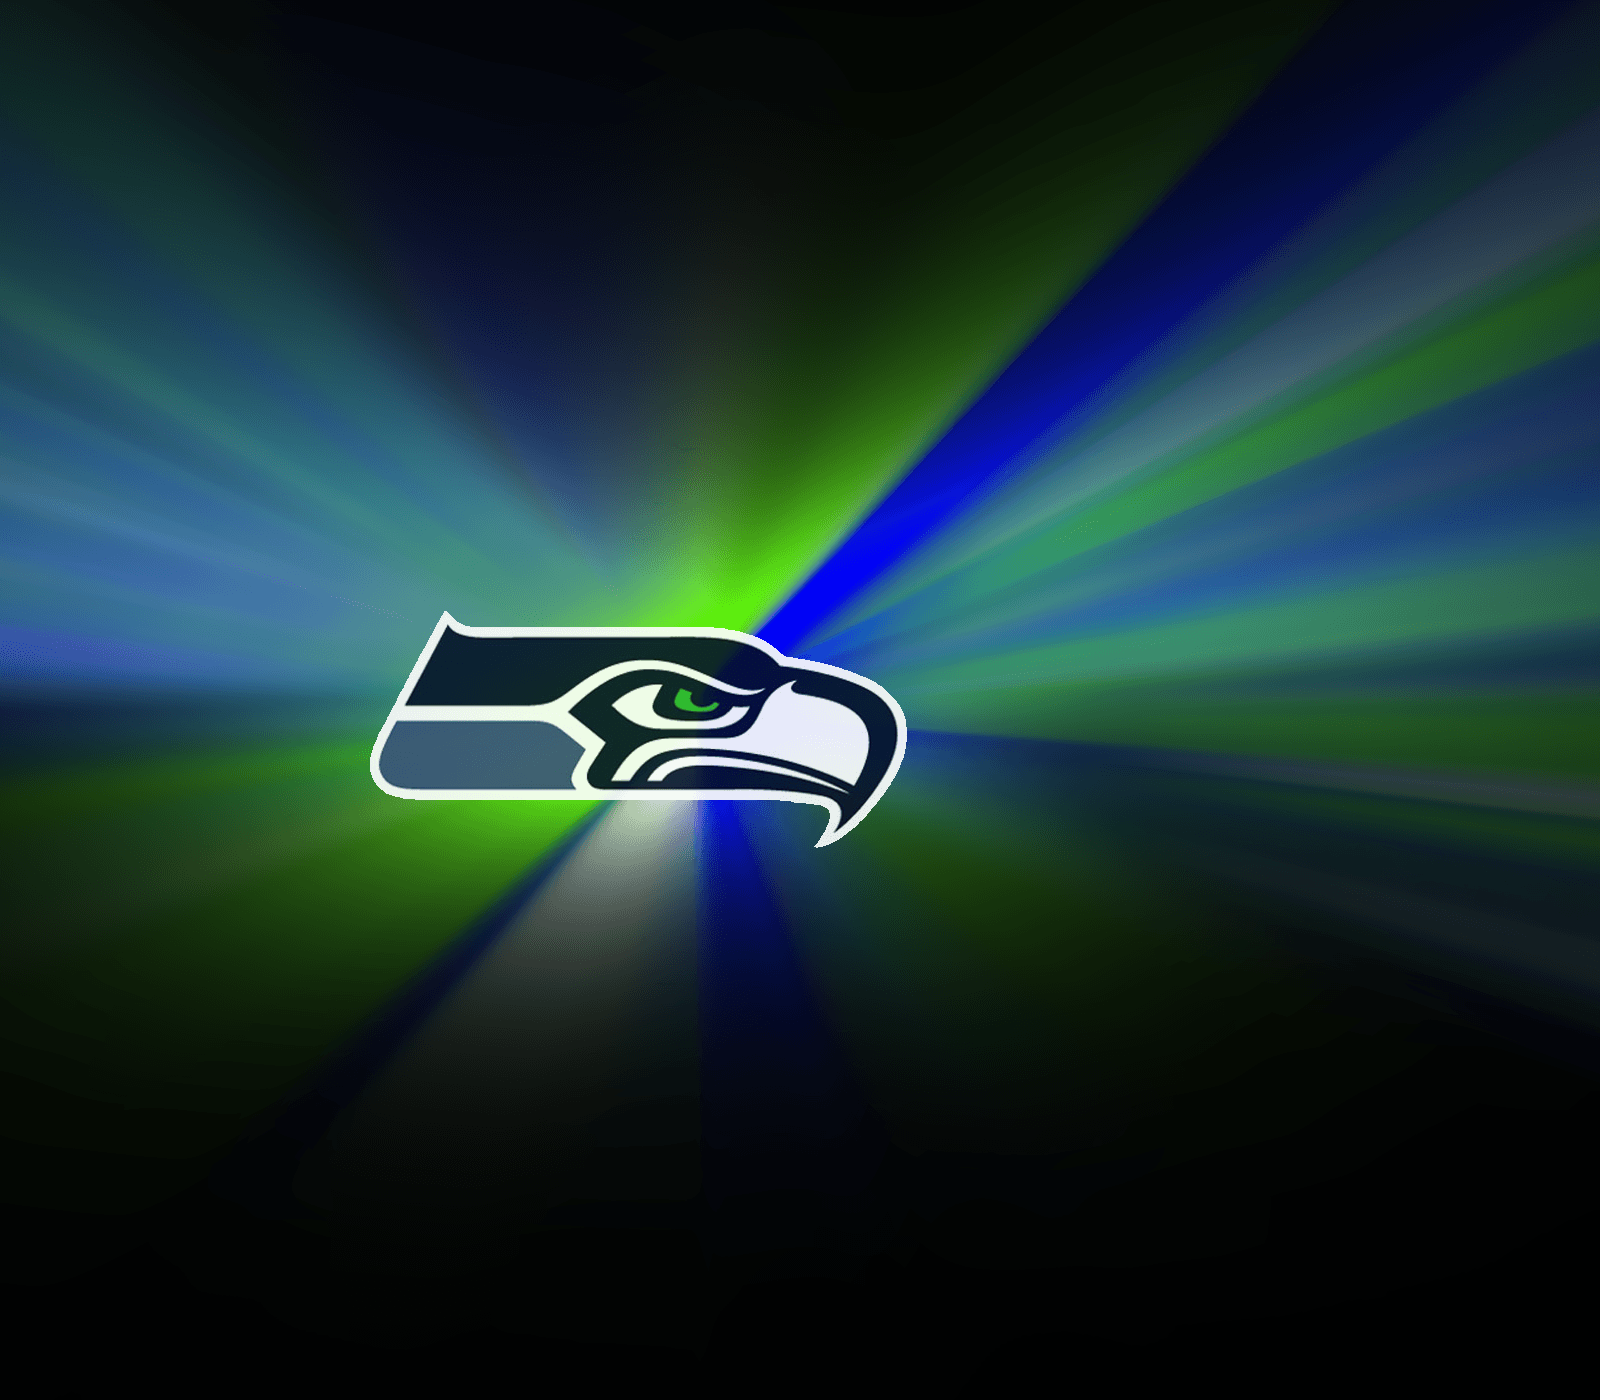 Seattle seahawks wallpapers wallpaper cave seattle seahawks logo wallpaper hd wallpaper and download free voltagebd Image collections